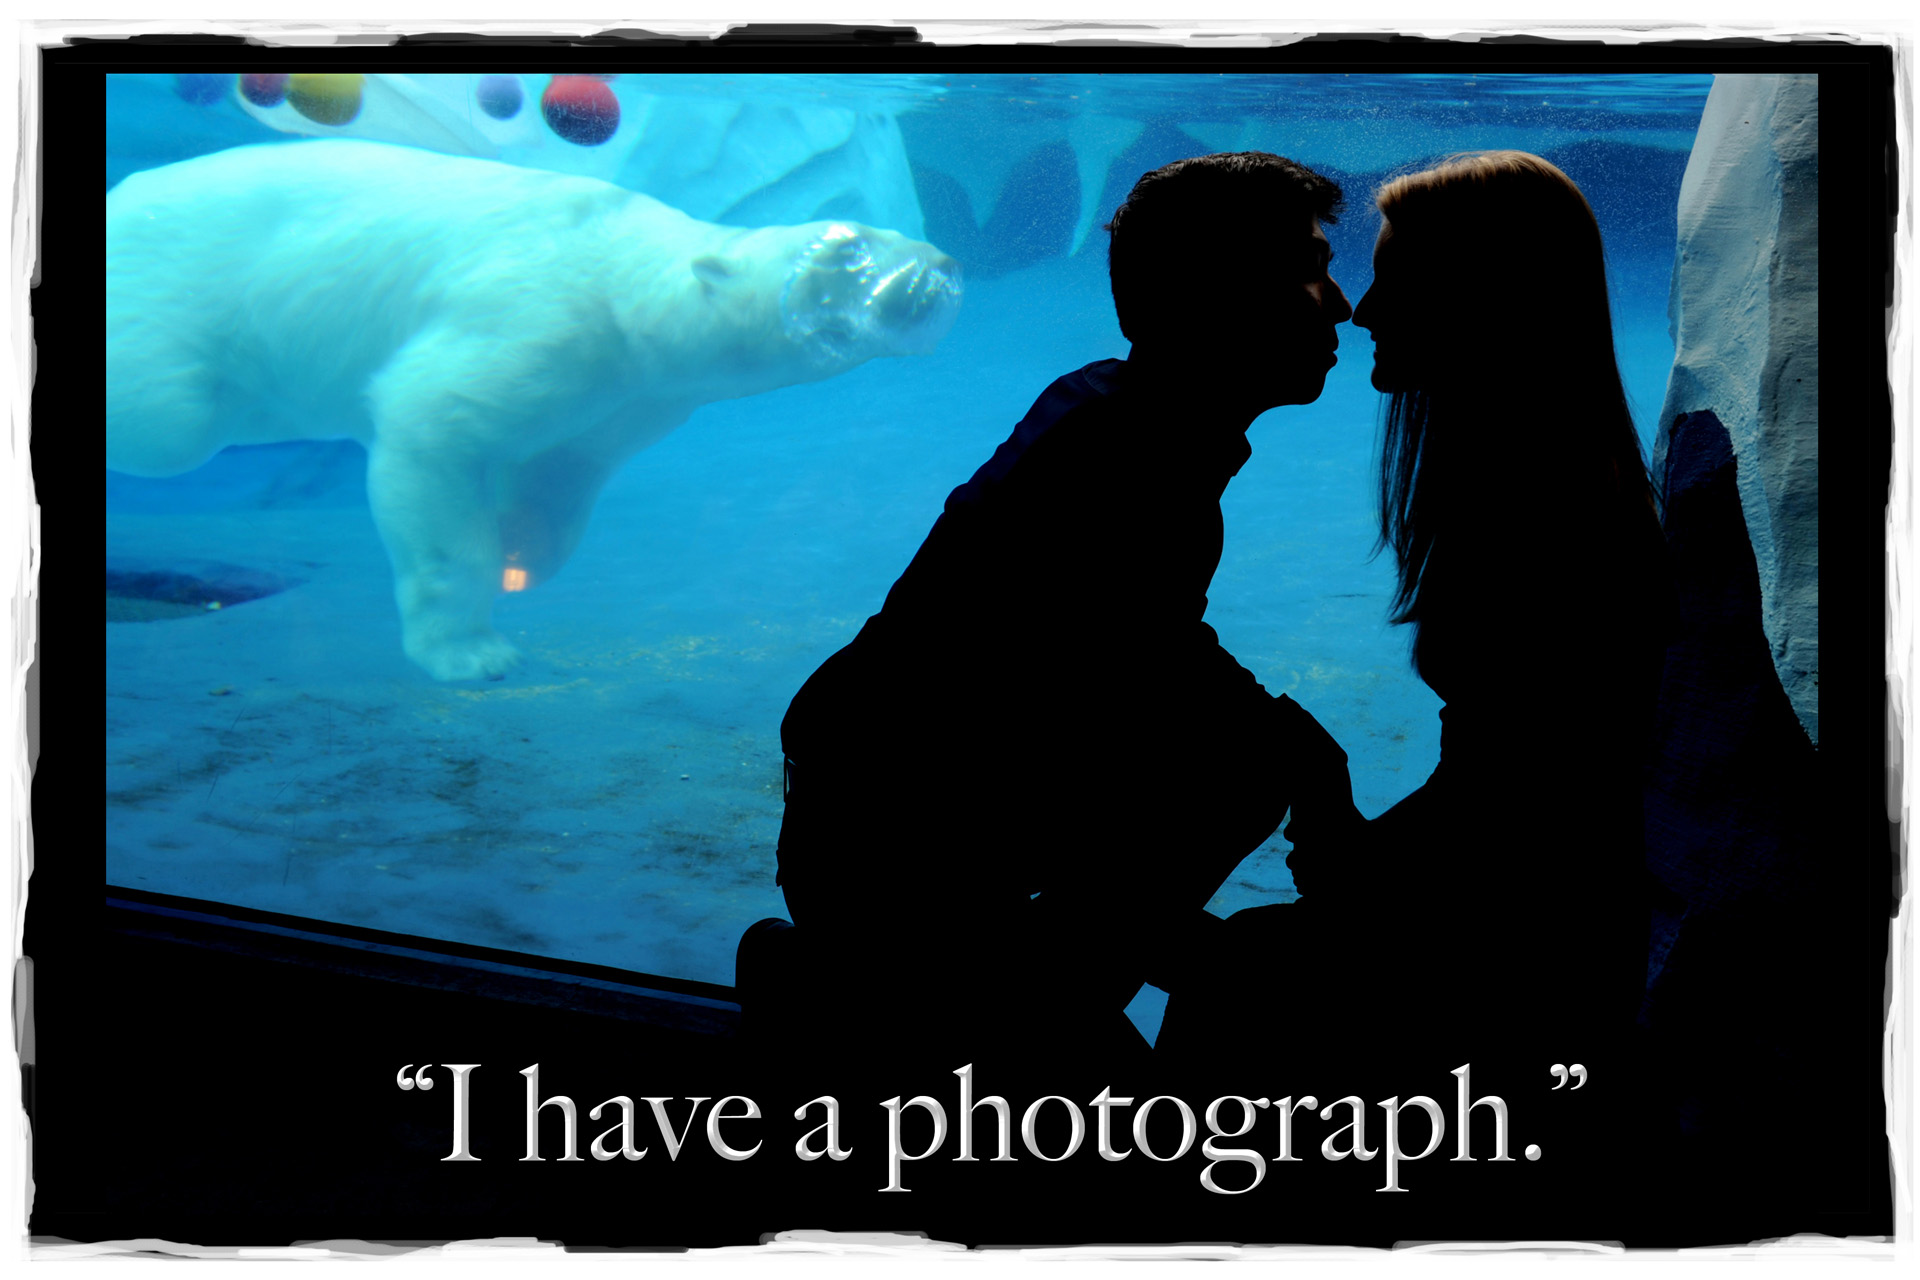 A Detroit couple kiss while a polar bear goes by at the Detroit zoo during an engagement photo shoot.